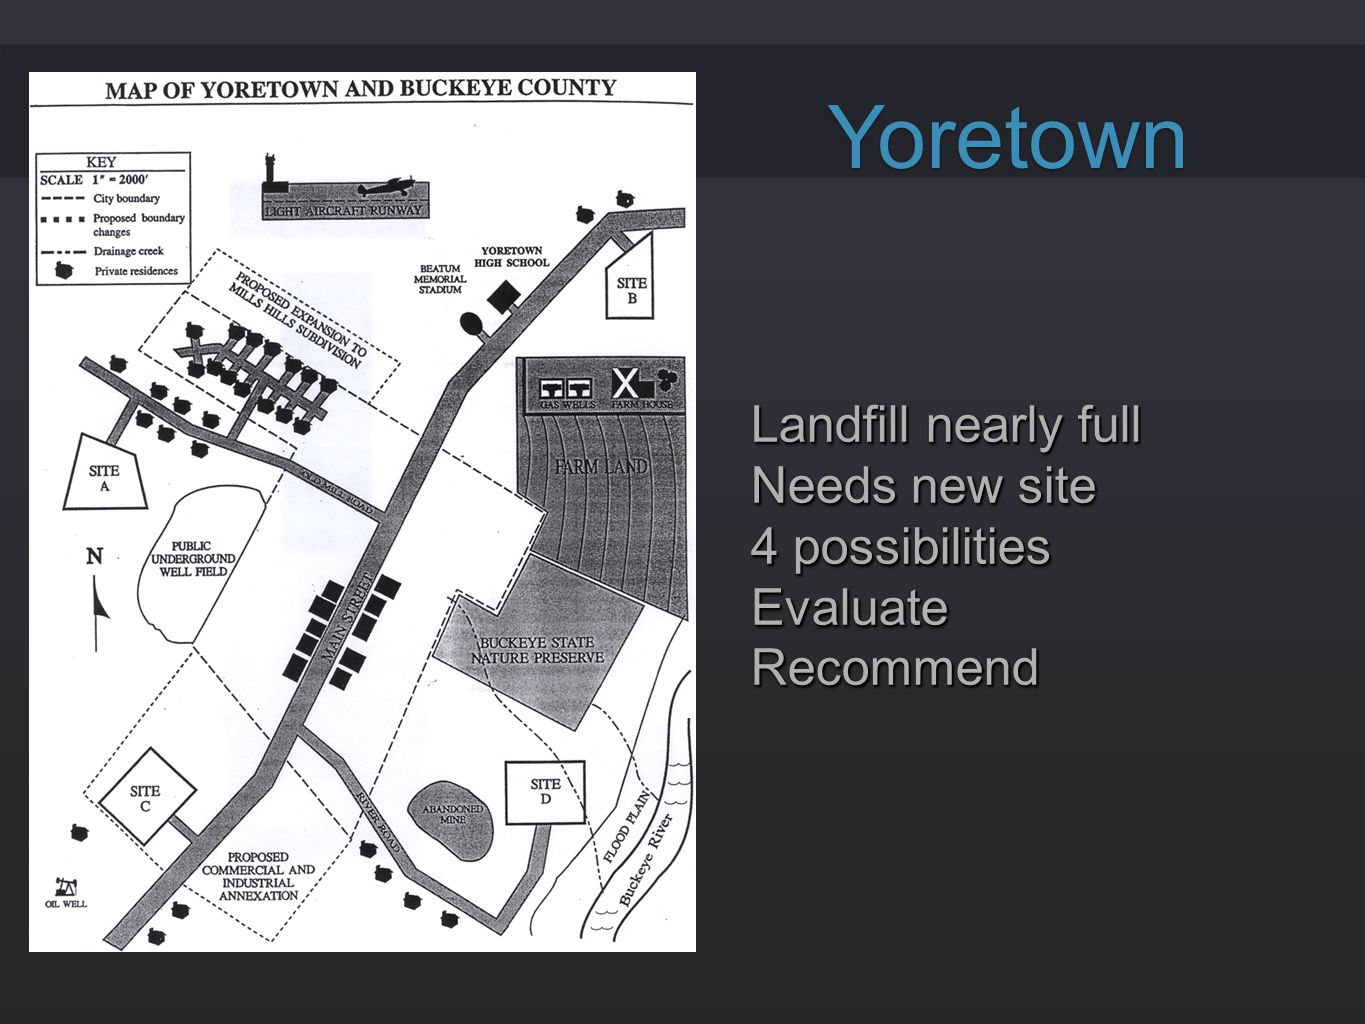 Yoretown Landfill nearly full Needs new site 4 possibilities Evaluate